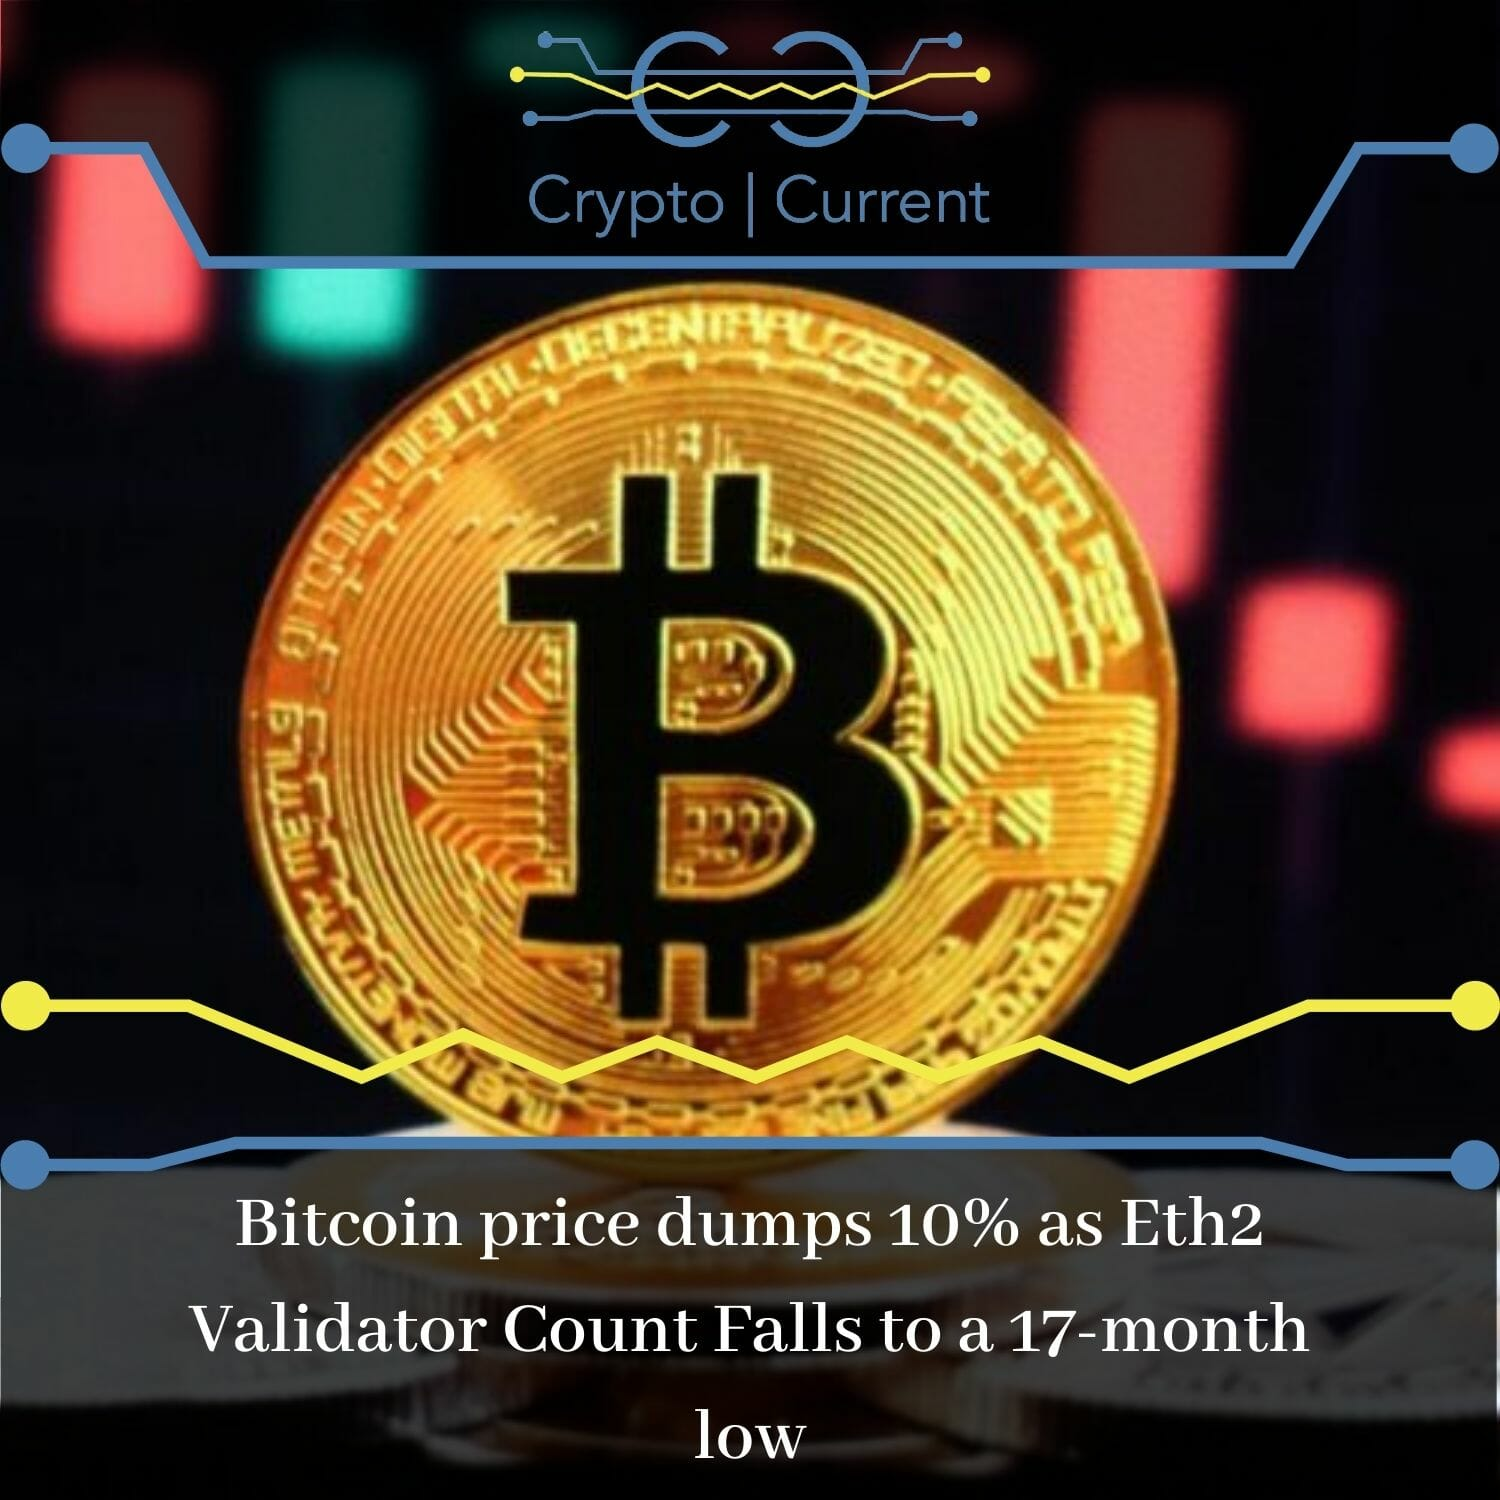 Bitcoin price dumps 10% as Eth2 Validator Count Falls to a 17-month low